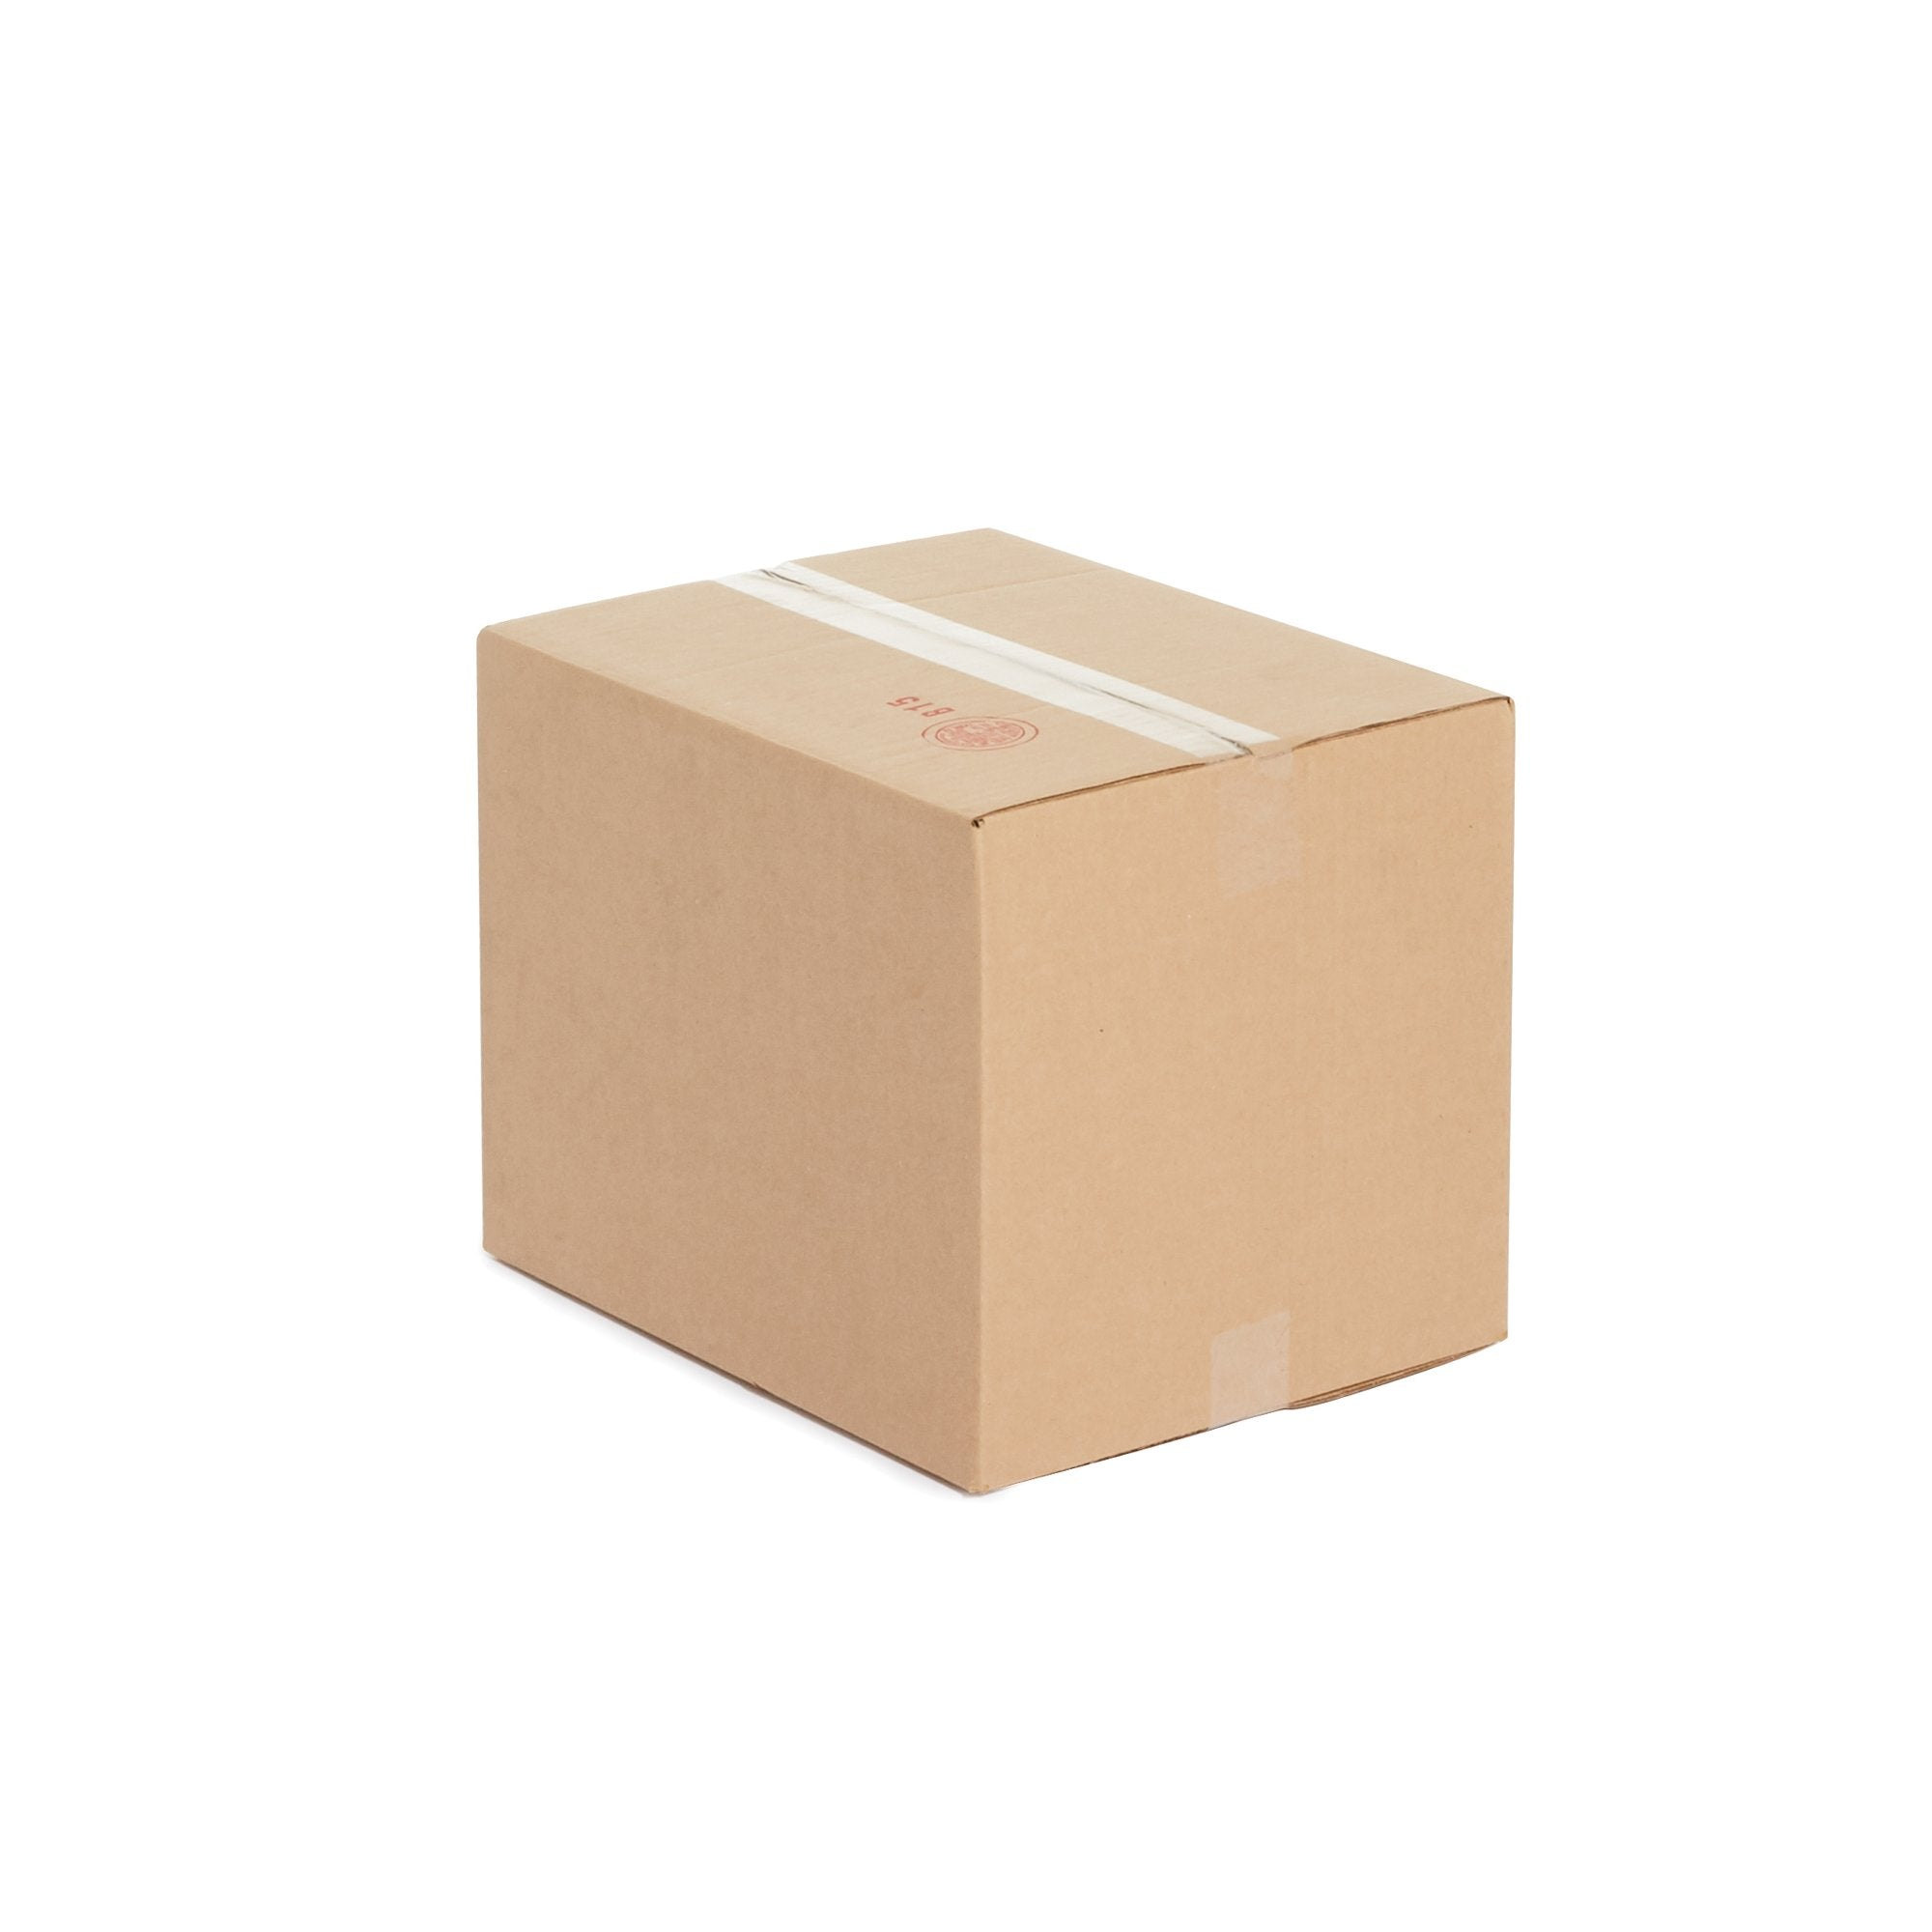 "Small Moving Box - 16"" x 14"" x 10"" Pack of 5"